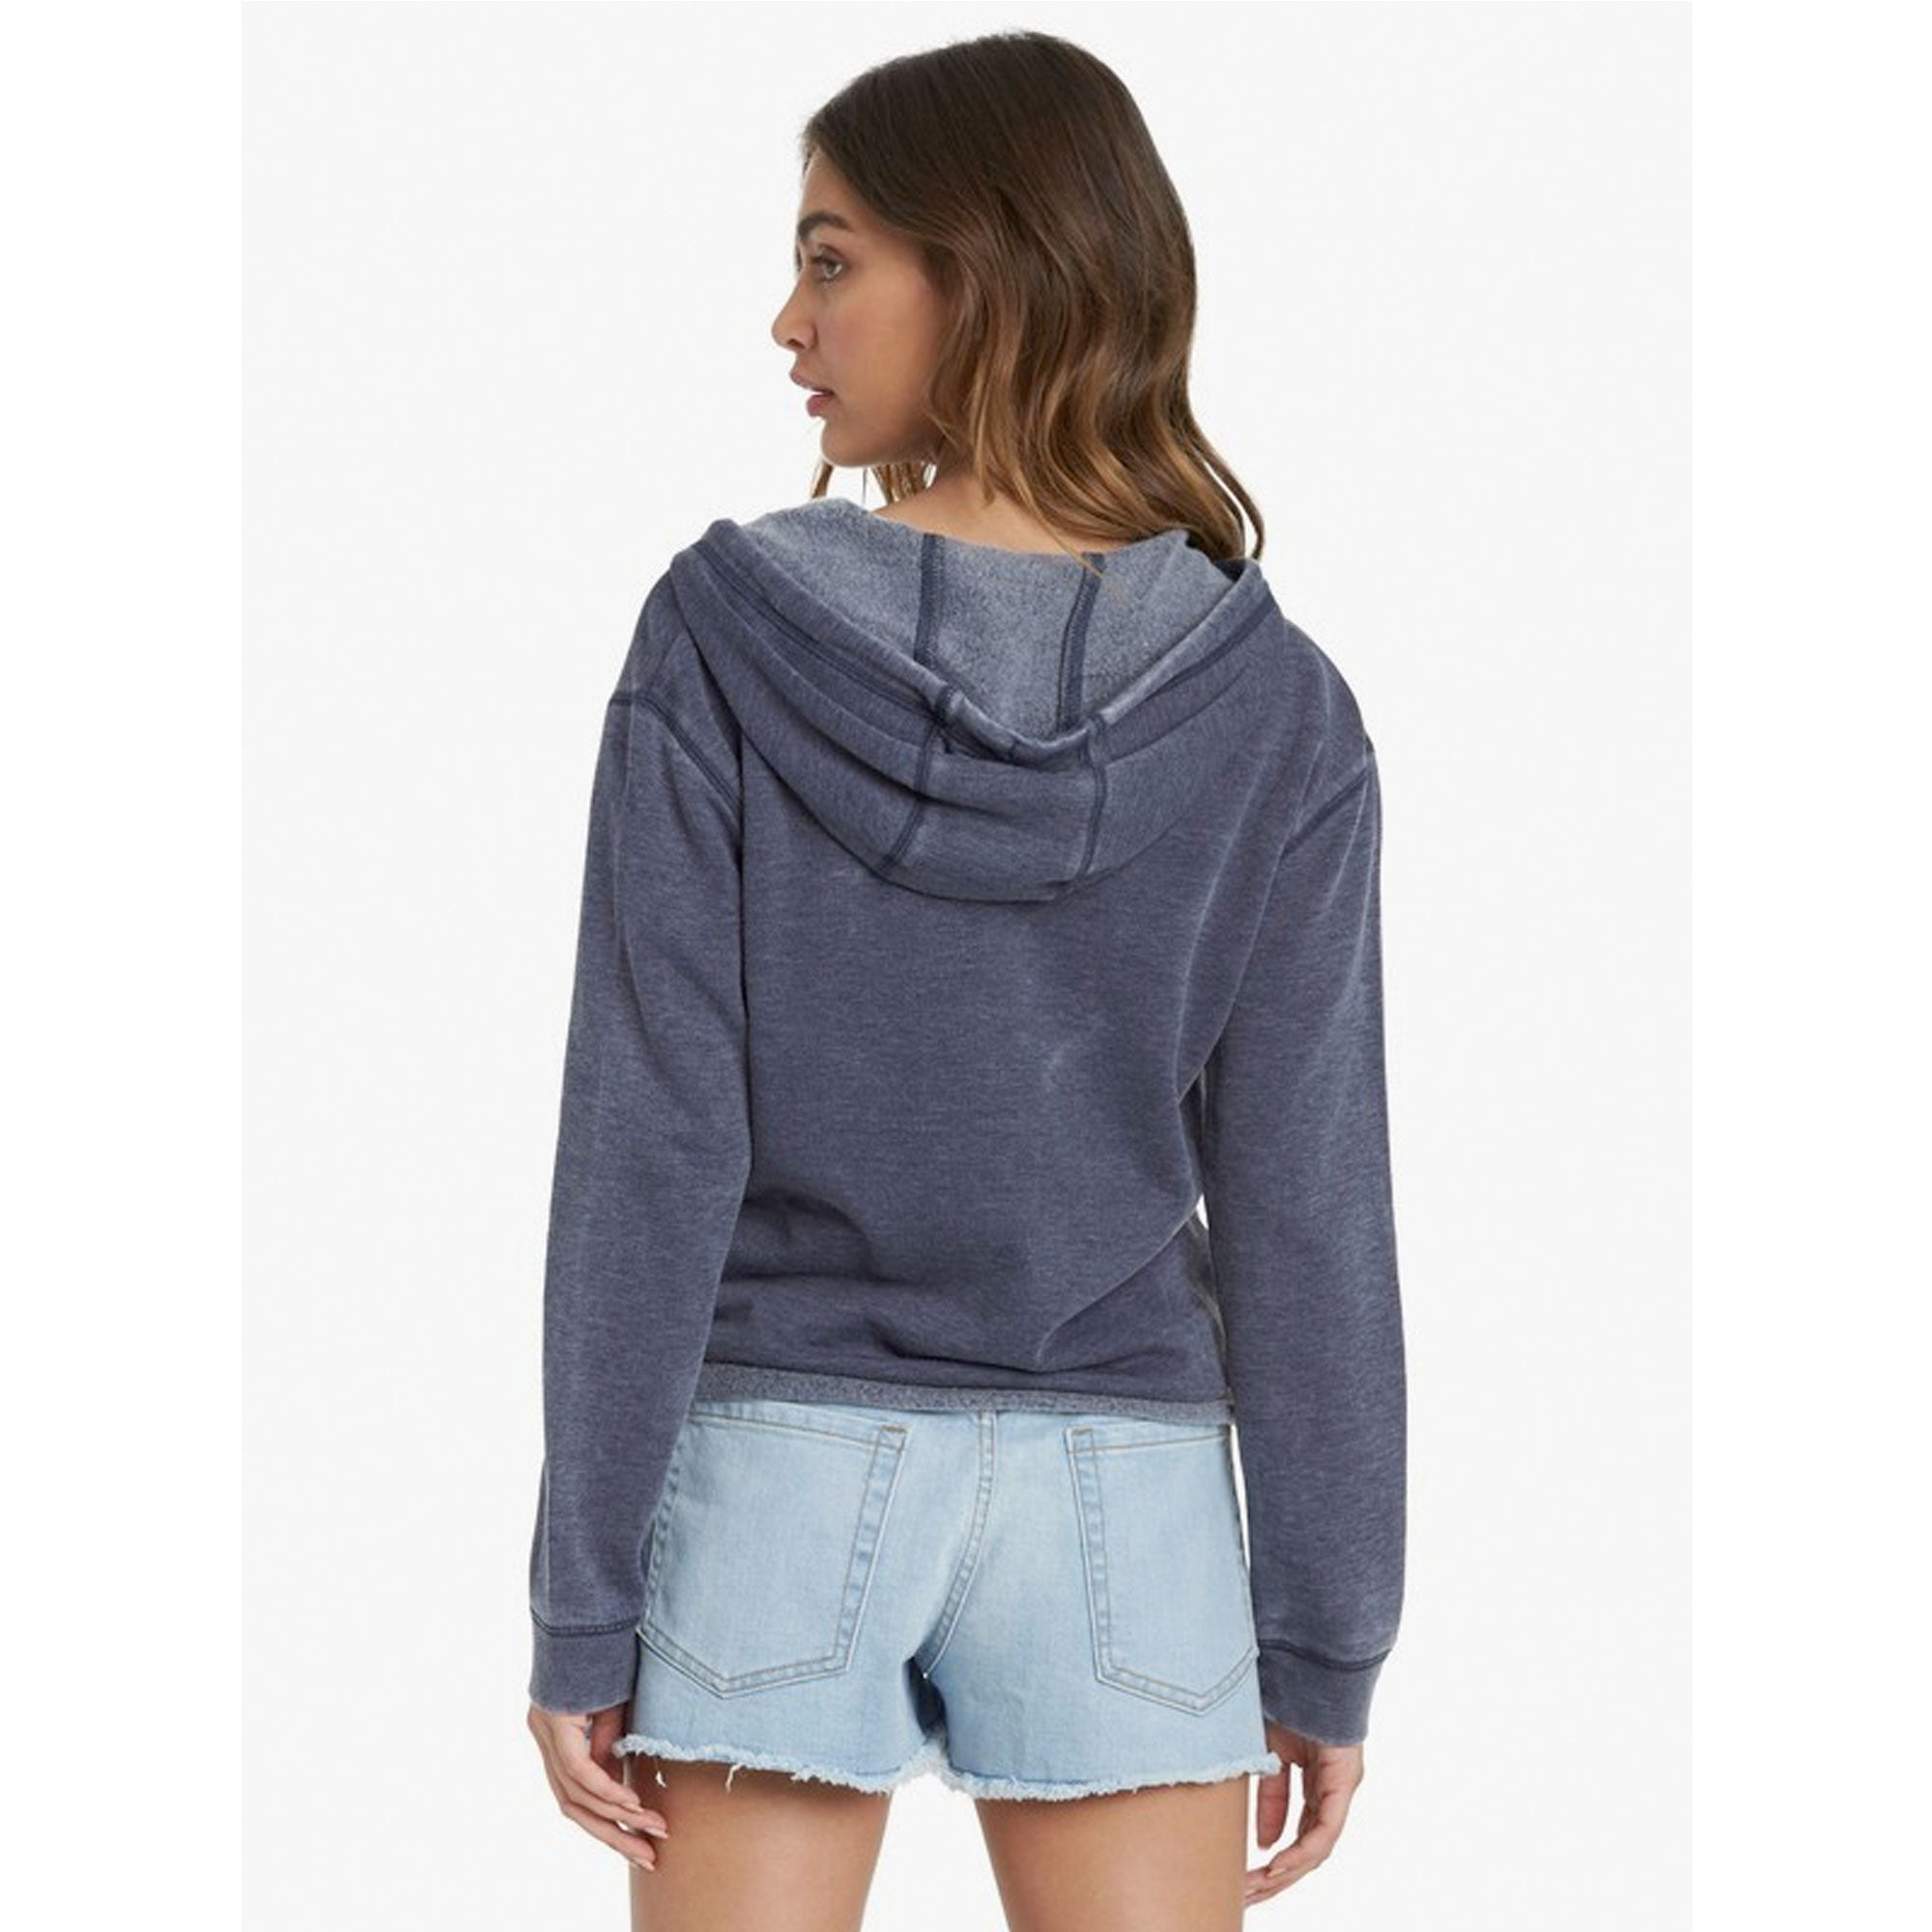 Roxy Go For it B Women's Zip-Up Hoodie